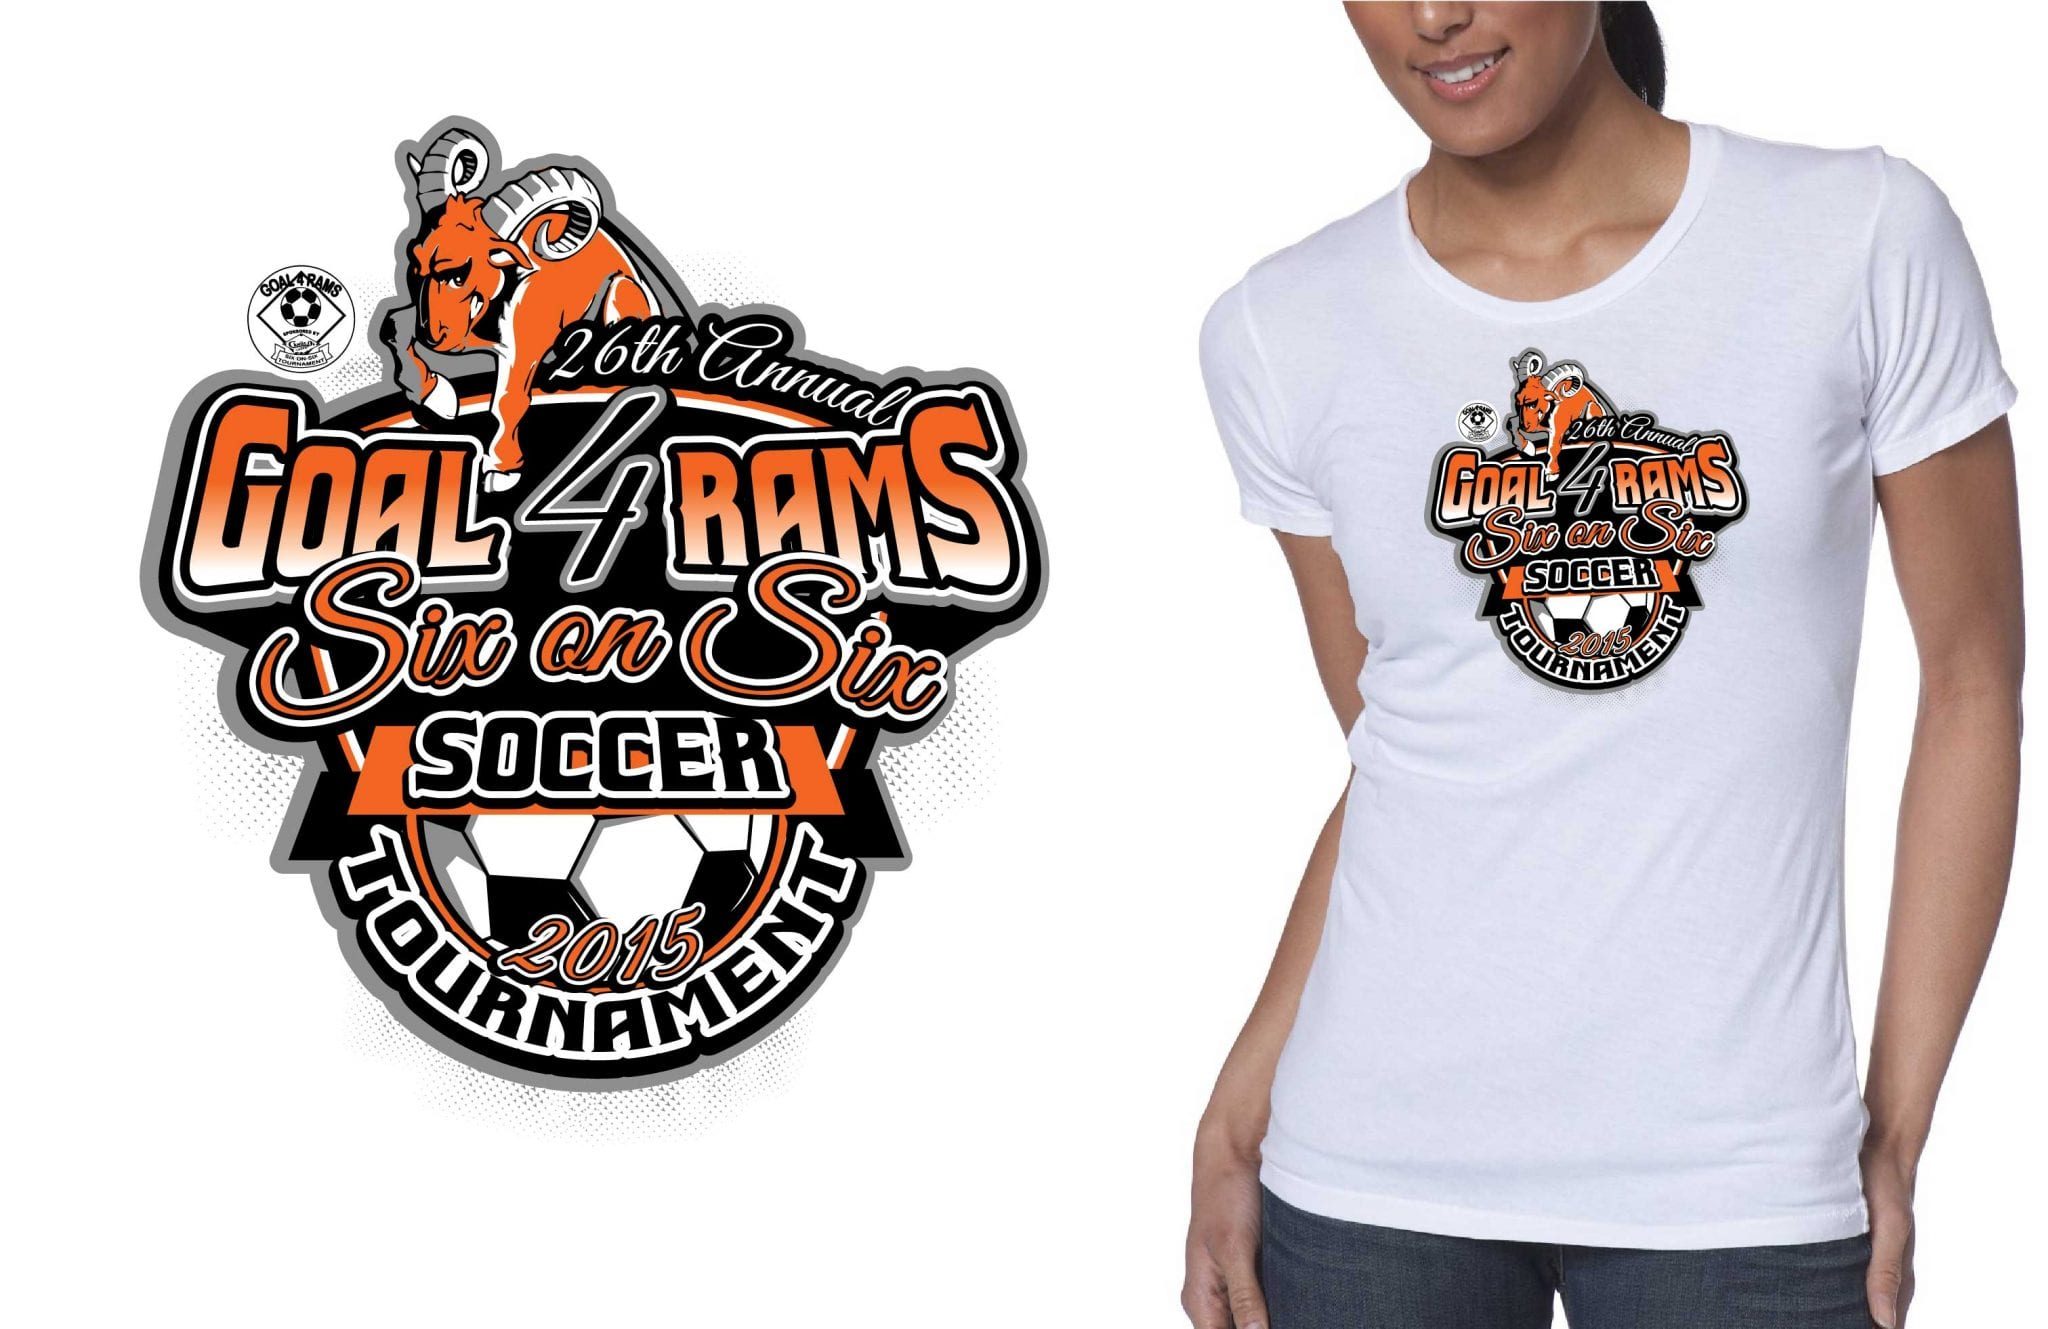 2015 26th annual goal 4 rams six on six soccer tournament cool soccer t shirt logo design color separated by graphic designer at ur art studio cleveland